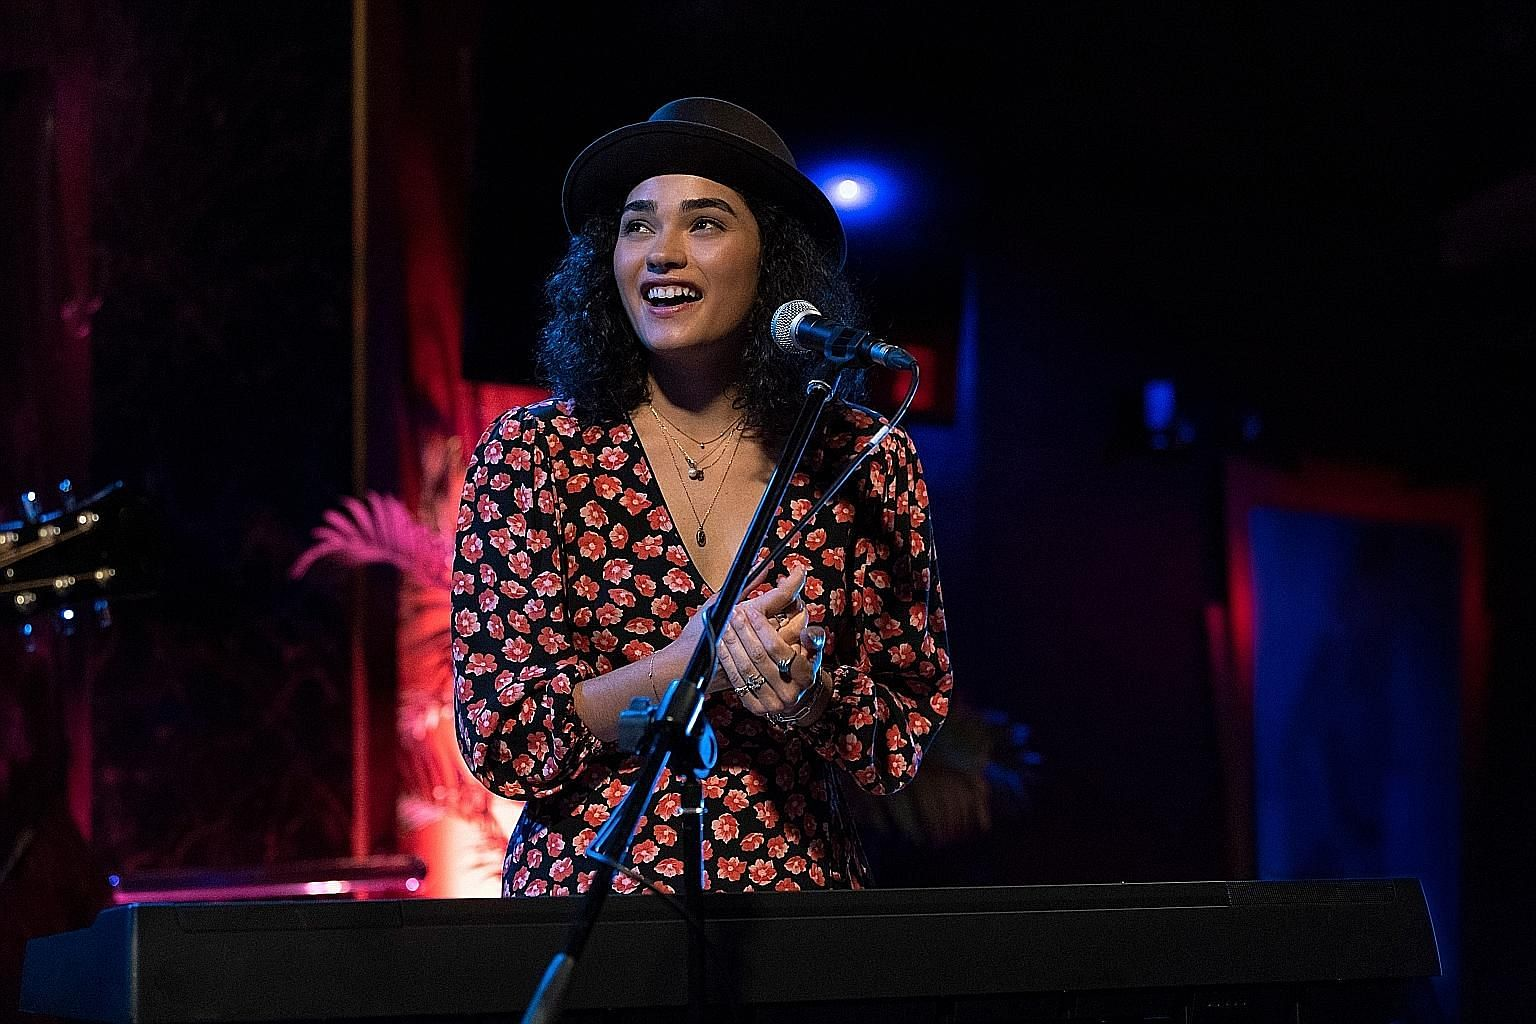 Brittany O'Grady (above) in Little Voice as Bess, a shy young singer who is afraid to perform on stage. The series is inspired by singer-songwriter Sara Bareilles (left, in a performance in Singapore in 2014).